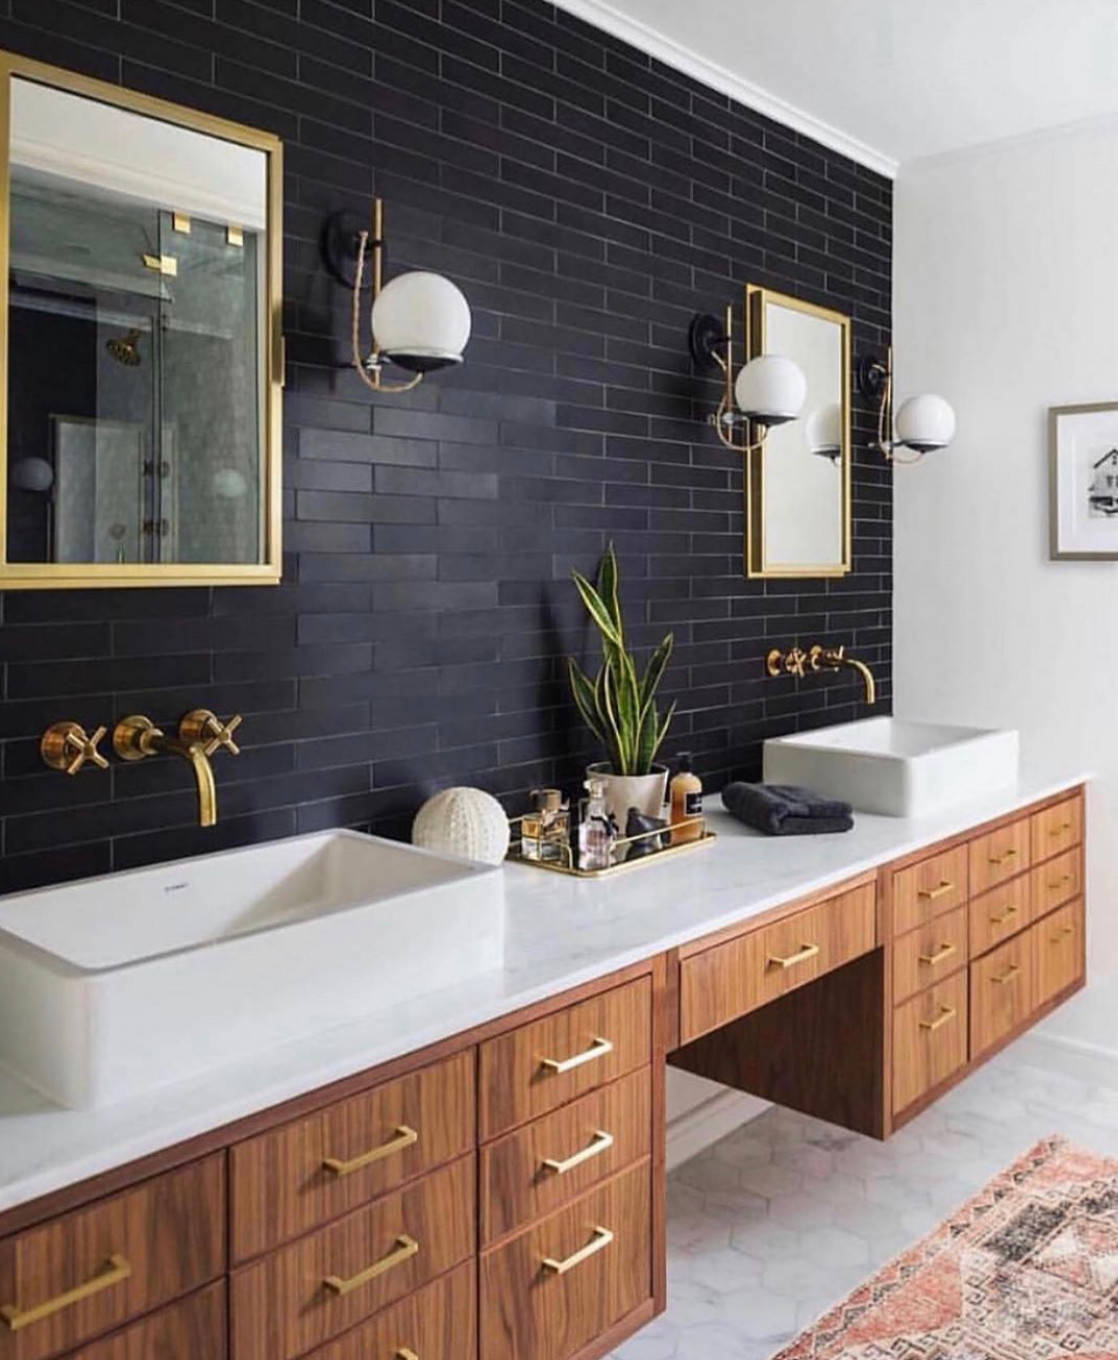 75 Beautiful Black Tile Bathroom Pictures Ideas November 2020 Houzz